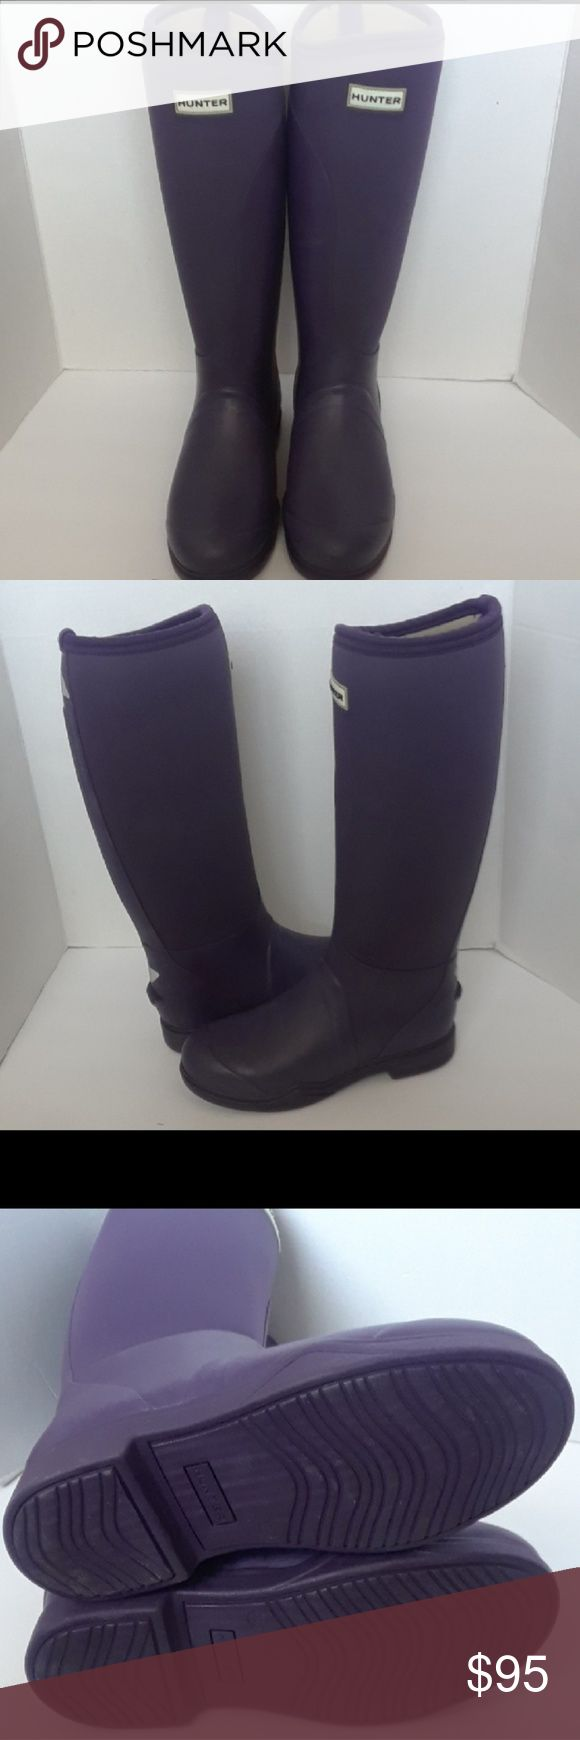 Hunter Balmoral neoprene stretch boots Sz 8 (iris) Developed in conjunction with experts in the equestrian field, the Balmoral Equestrian Neoprene boots are the perfect welly for horse riding.  Neoprene upper with rubber inside-leg panelsAirmesh neoprene liningRiding sole with metal shank  No box up for all offers   Hunter Boots Shoes Winter & Rain Boots